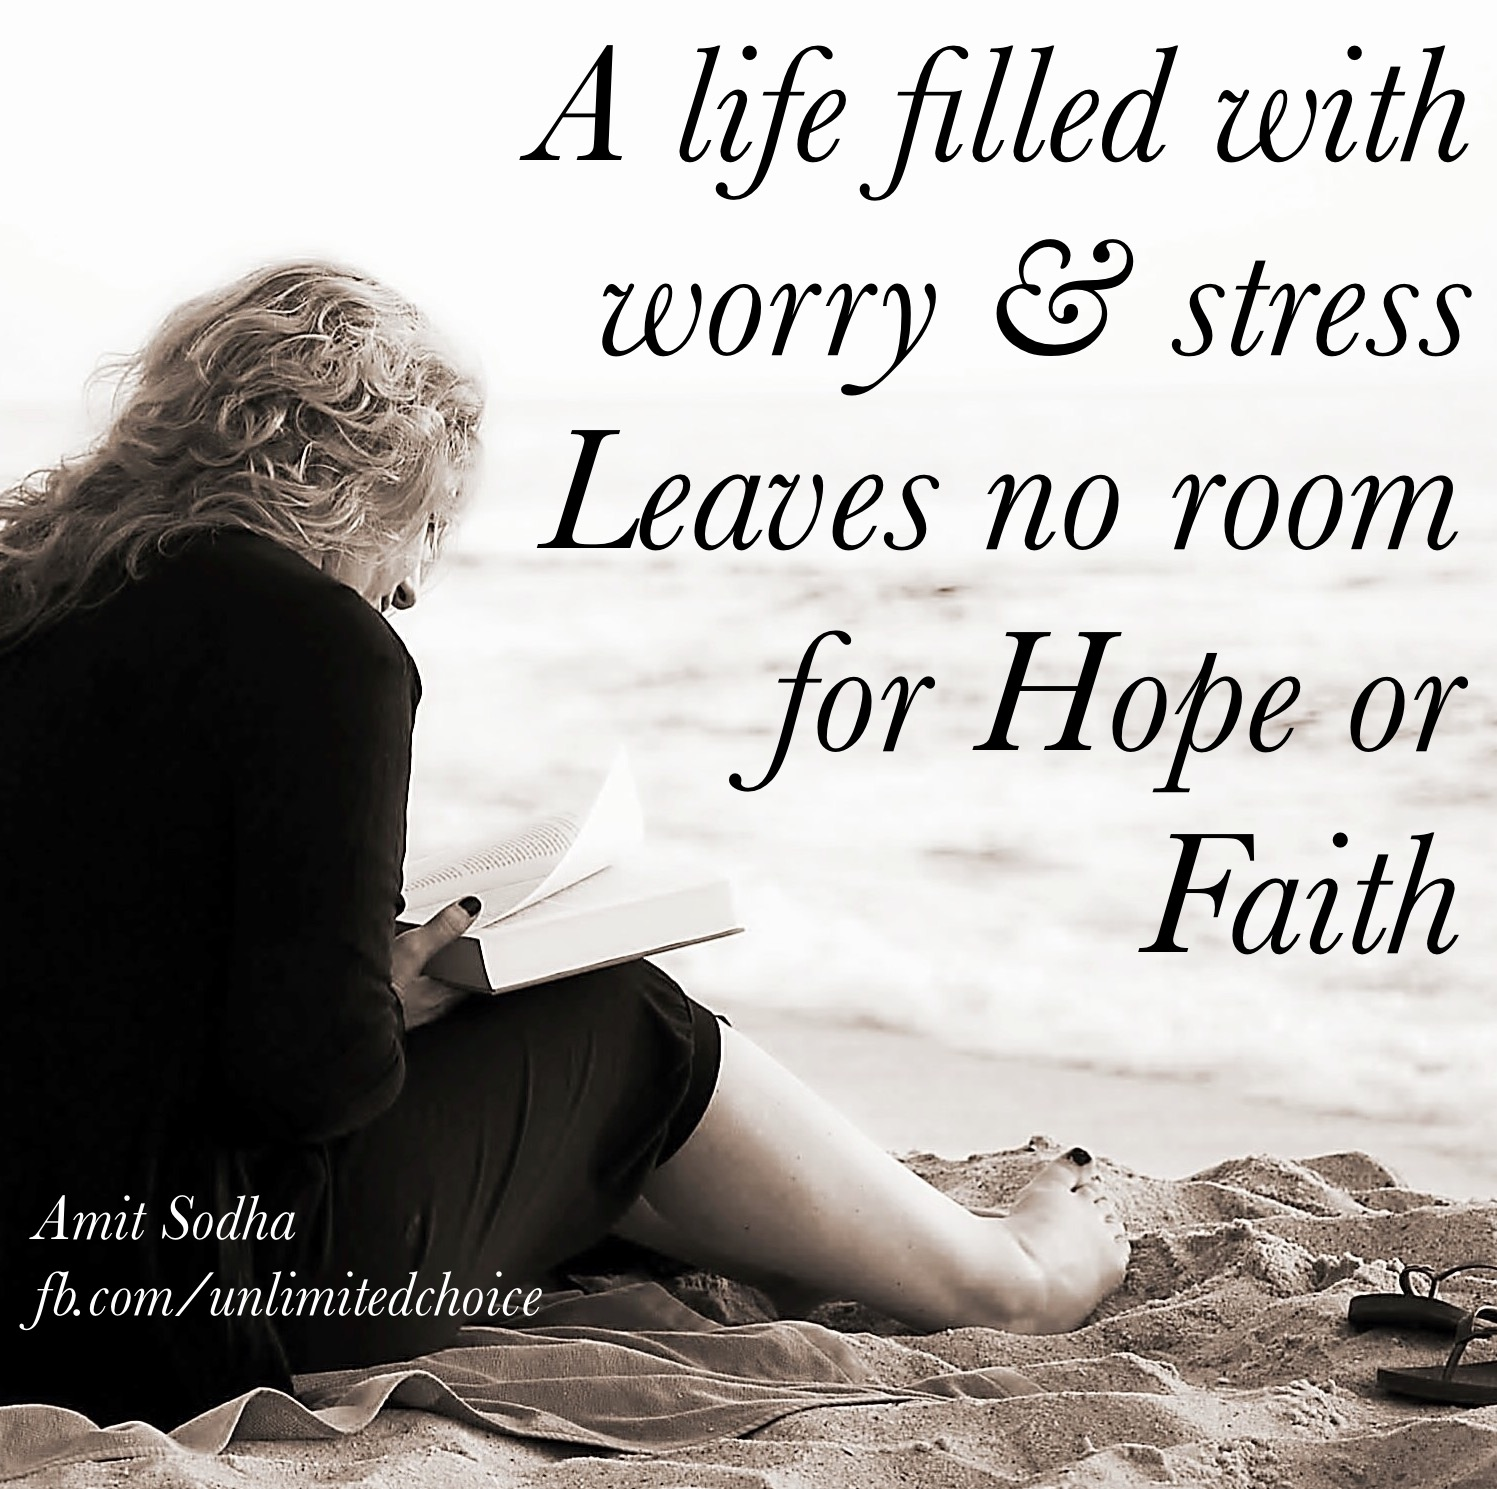 Uplifting Quotes For Women 44 Wonderful Uplifting Quotes For Women  Unlimited Choice